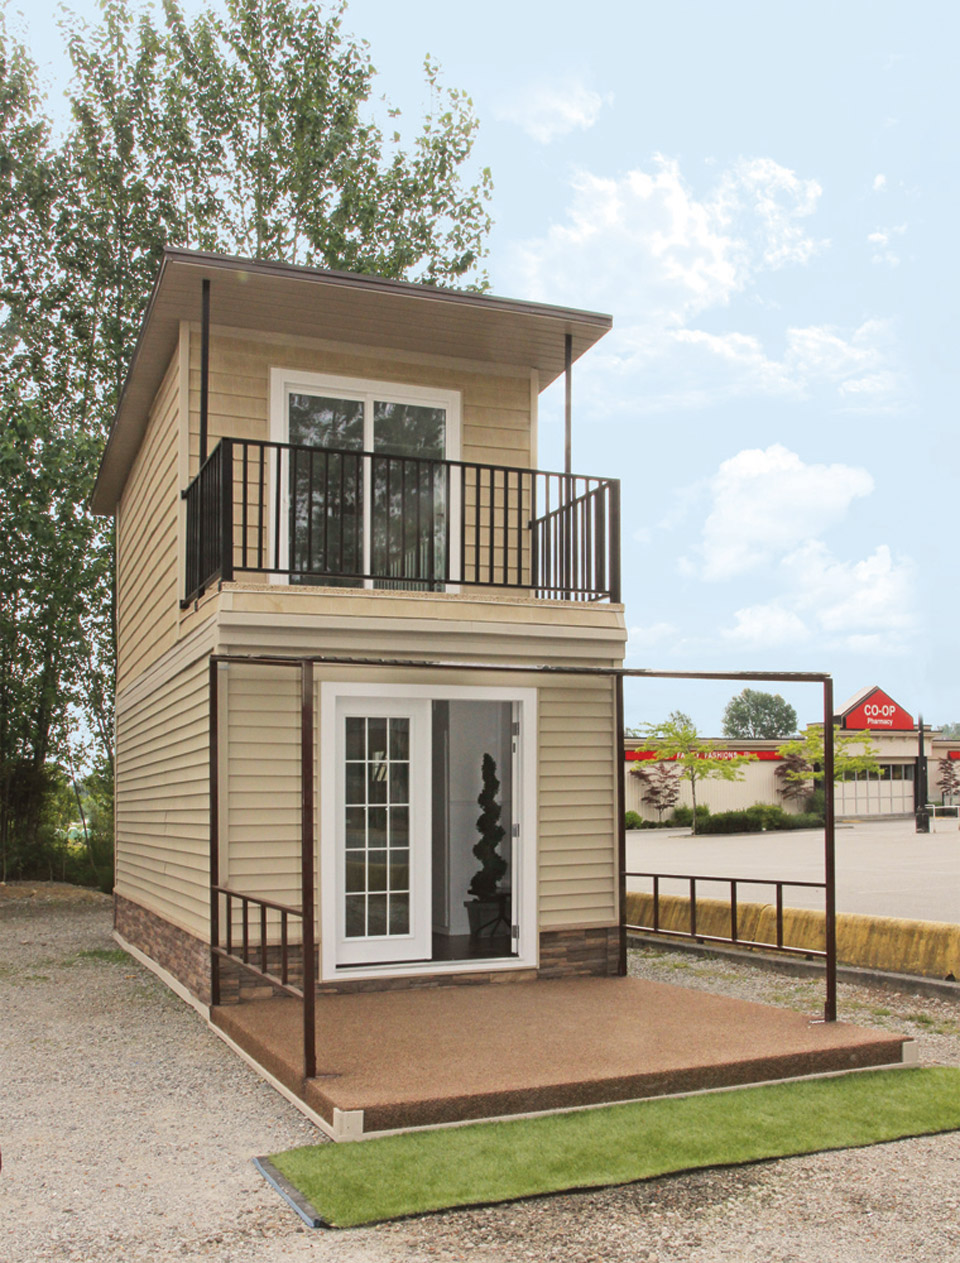 The eagle 1 a 350 sq ft 2 story steel framed micro home for 2 bedroom tiny house